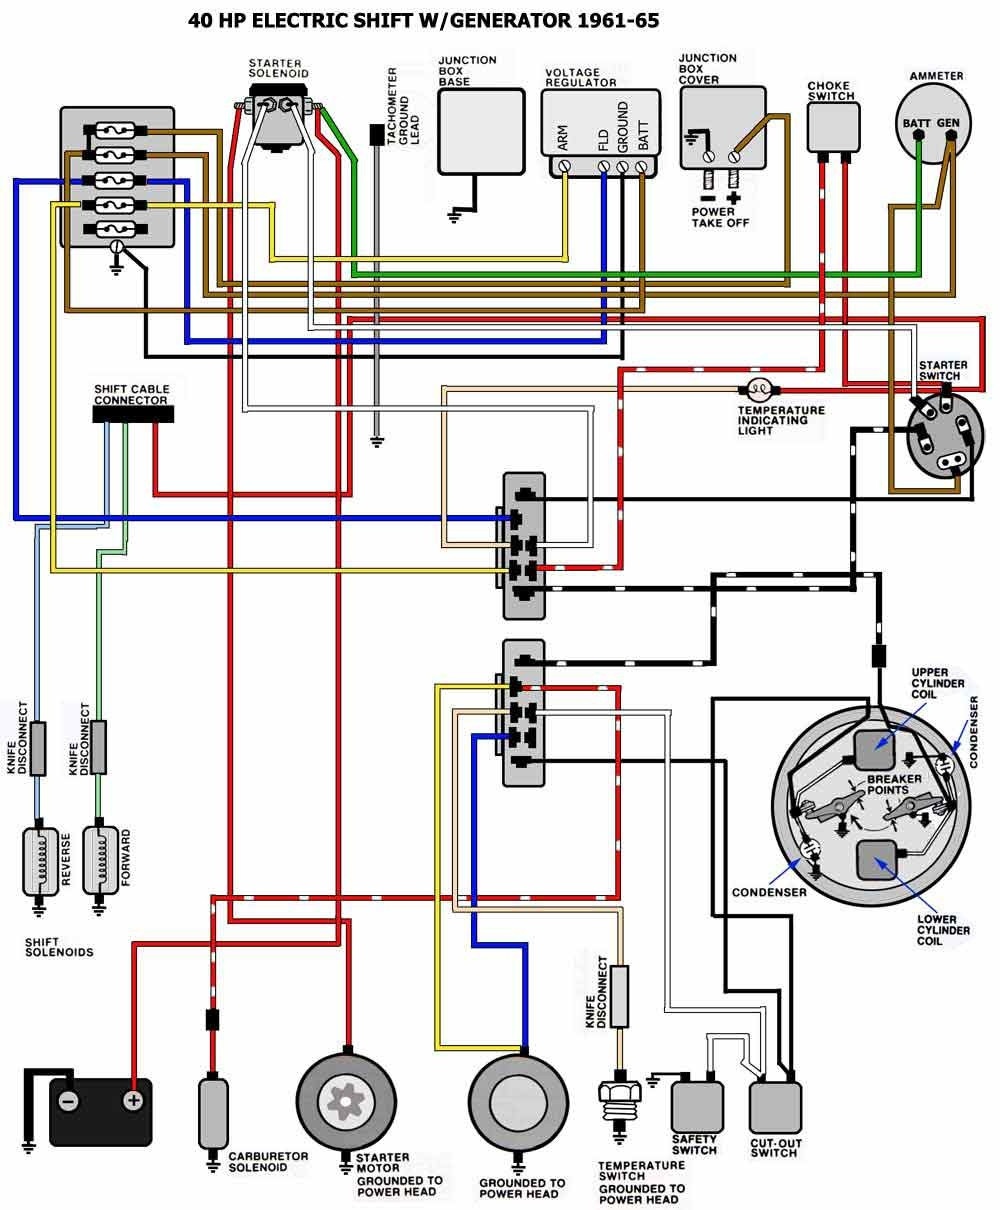 GR_1145] Yamaha Outboard Ignition Switch Wiring Wiring DiagramPapxe Funa Osuri Gue45 Mohammedshrine Librar Wiring 101